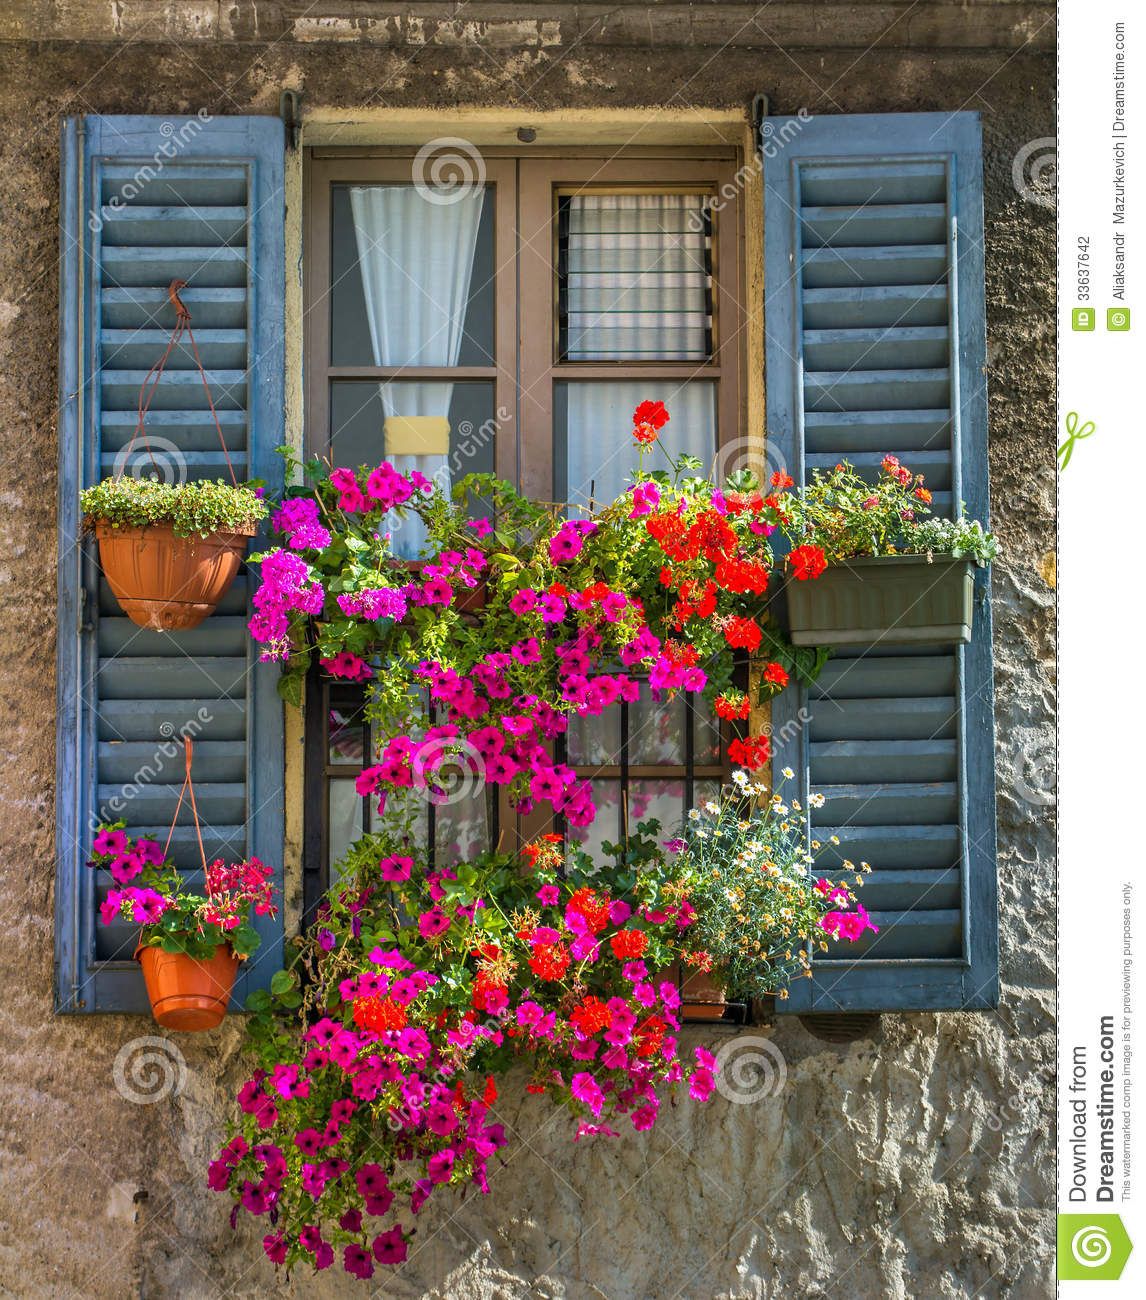 Exterior windows with shutters - Vintage Window With Fresh Flowers Stock Photography